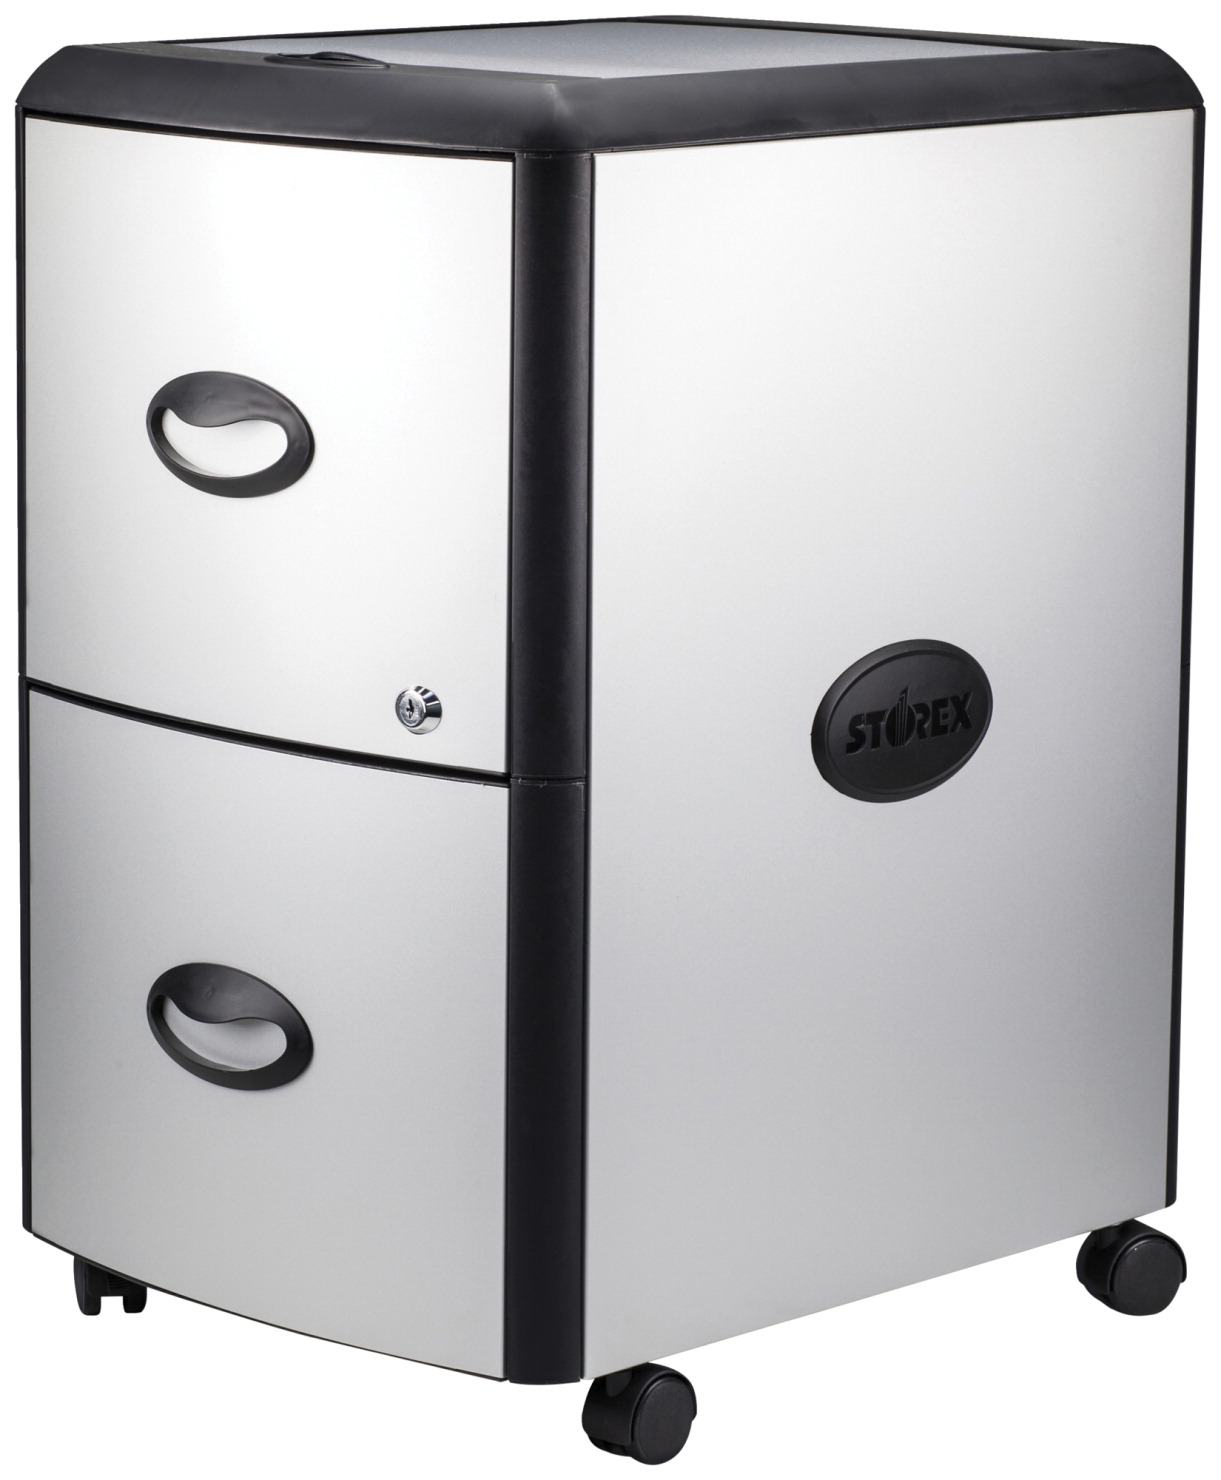 Storex Ind. Hard Top Mobile Filing Cabinet -- File Cabinet, Mobile, Metal,  Letter/Legal, 35 x 35 x 35 Inches, PLATINUM/GRAY